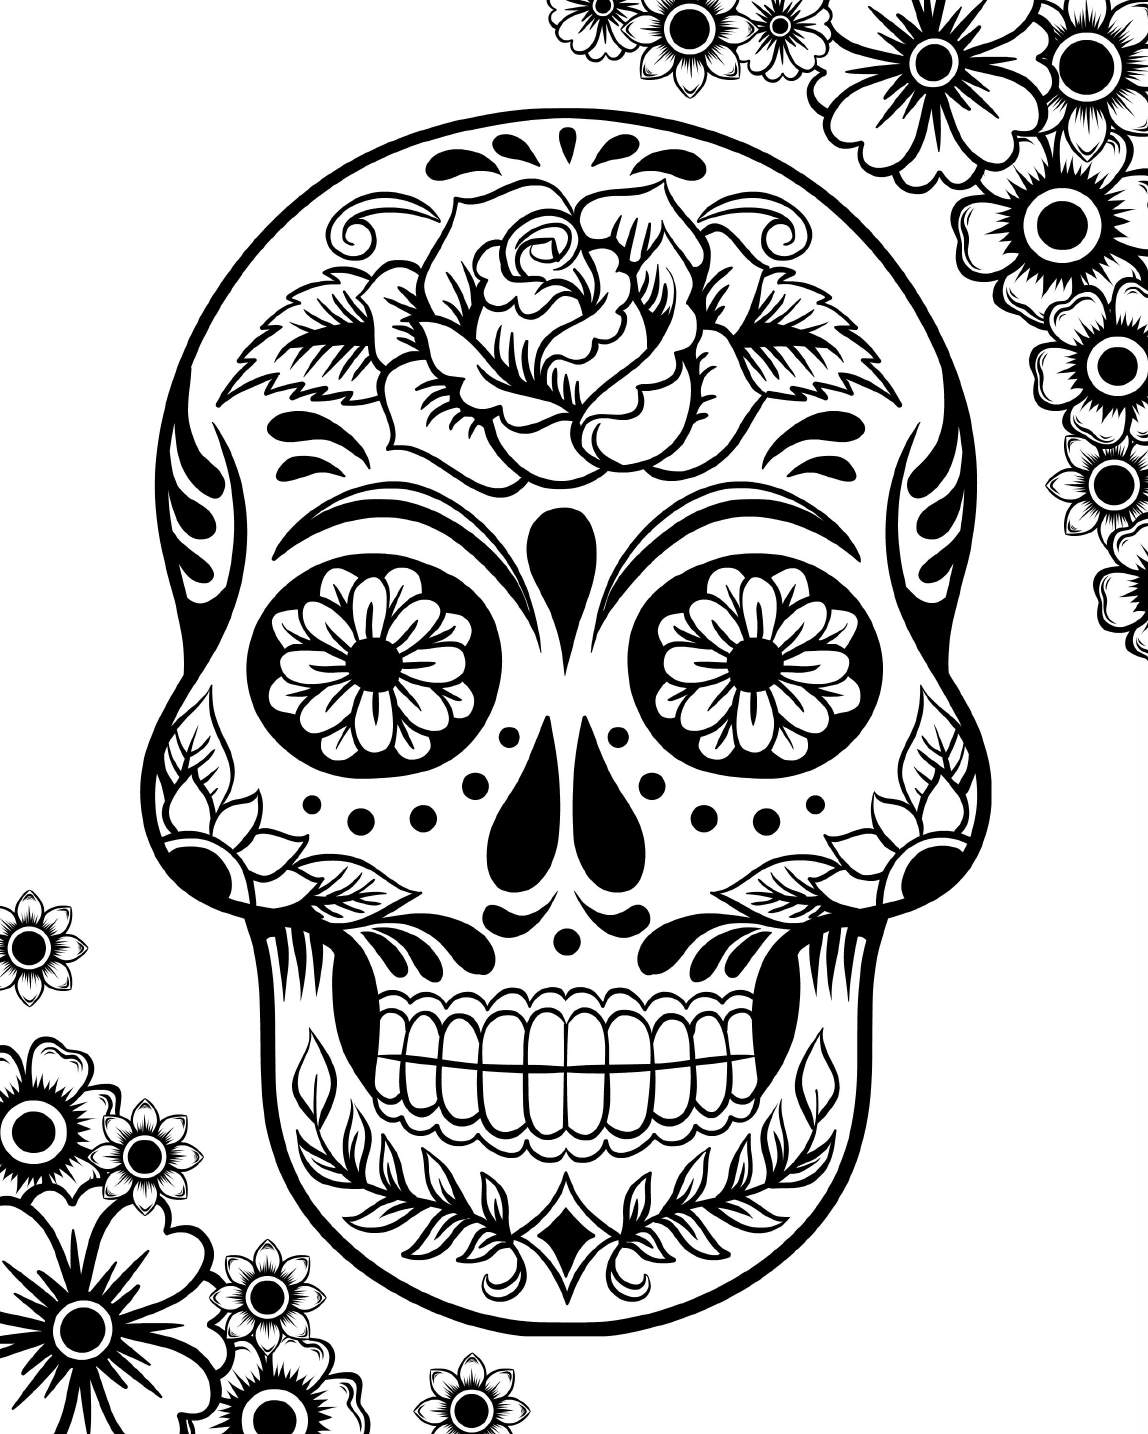 day of the dead skull coloring page printable skulls coloring pages for kids cool2bkids the page skull coloring dead of day